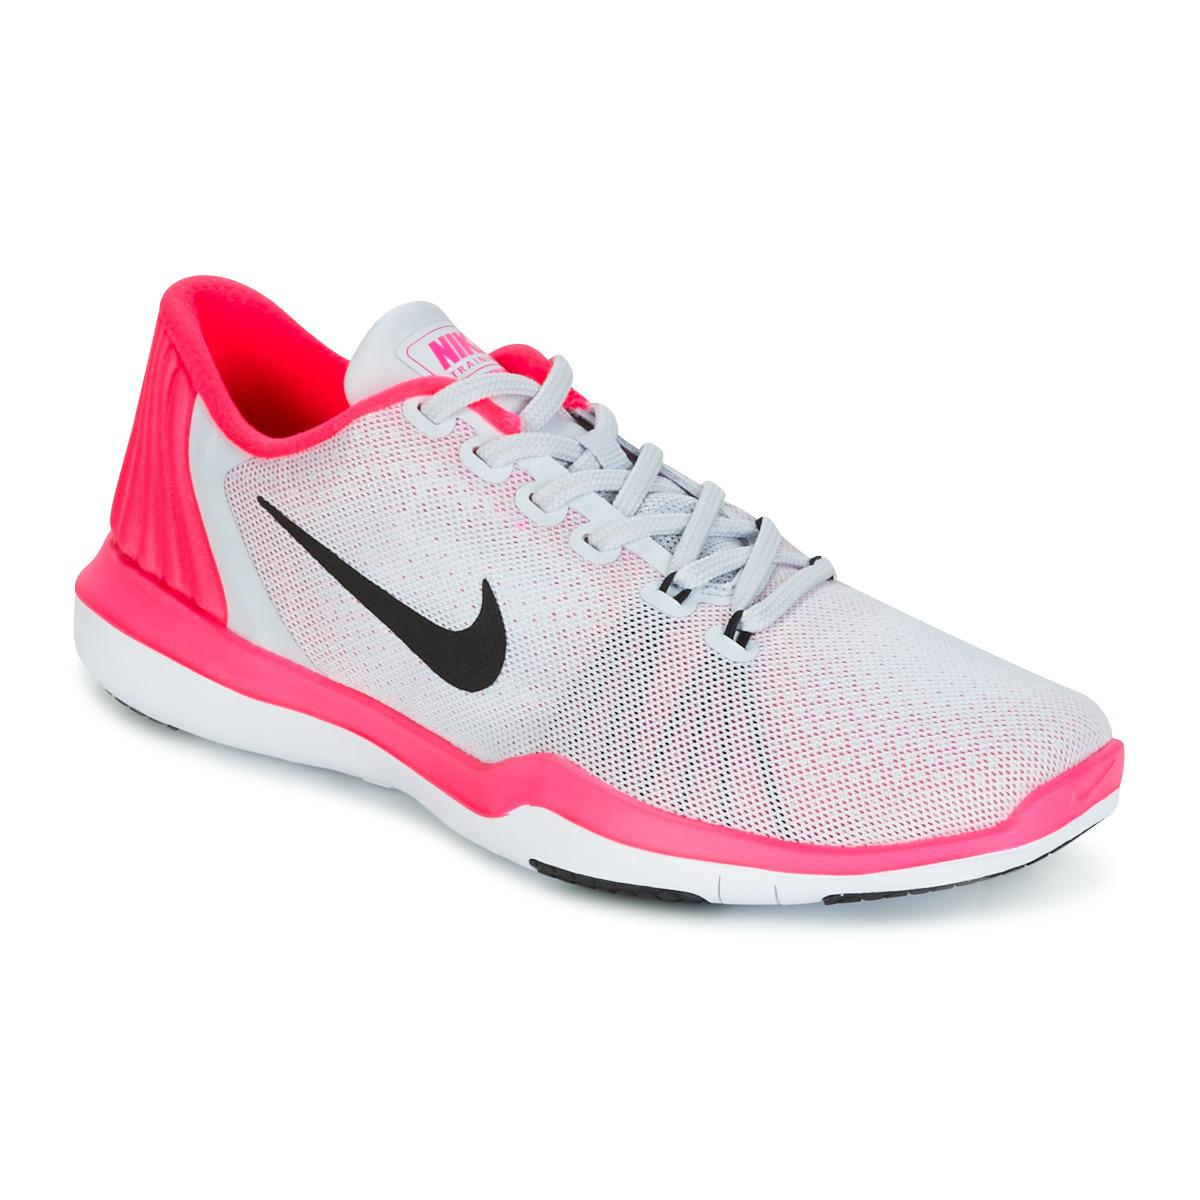 4a57f2f77883 Nike Flex Supreme Trainer 5 Trainers in Pink - Lyst